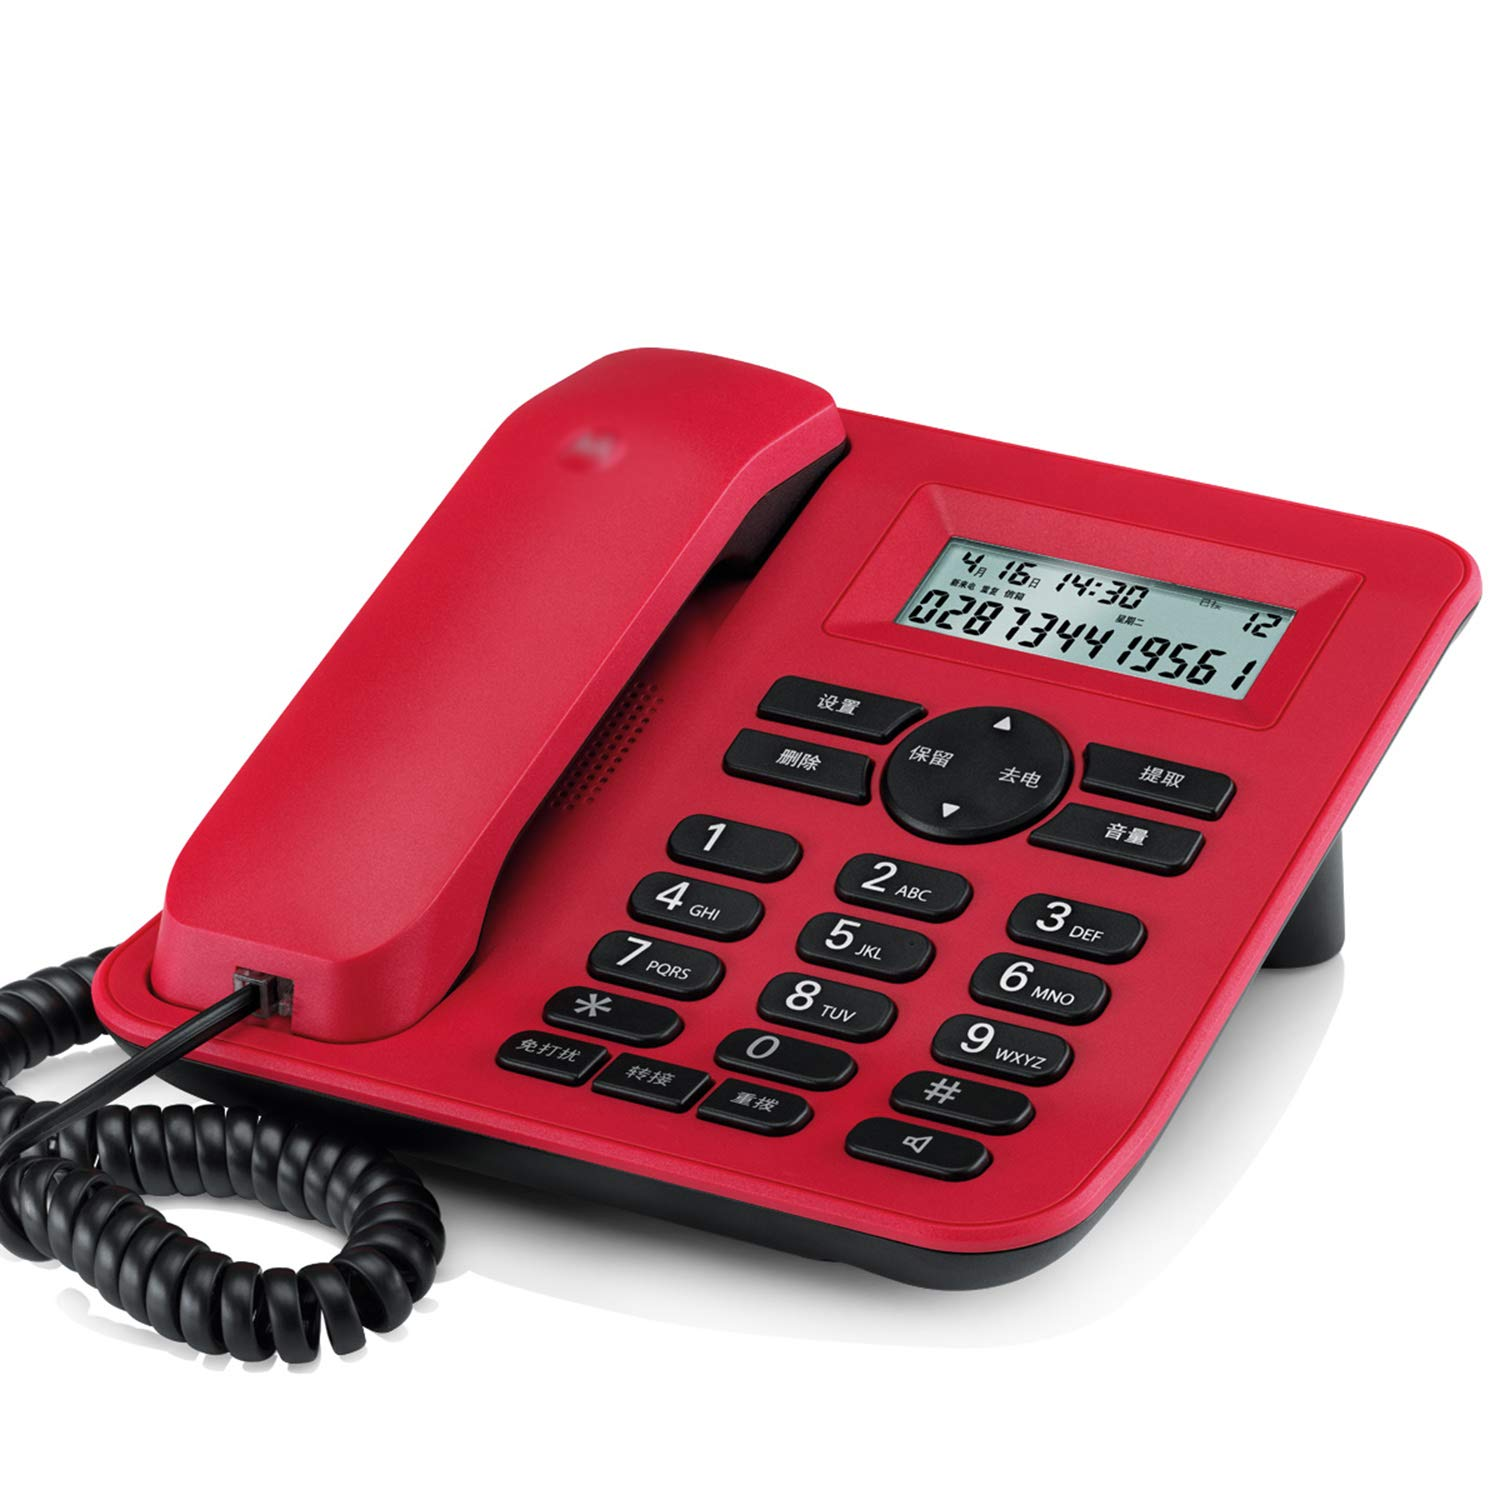 Battery Free Fixed Telephone Landline Corded Telephone Seat Home Office Backlit Fixed Line,Red by Telephones